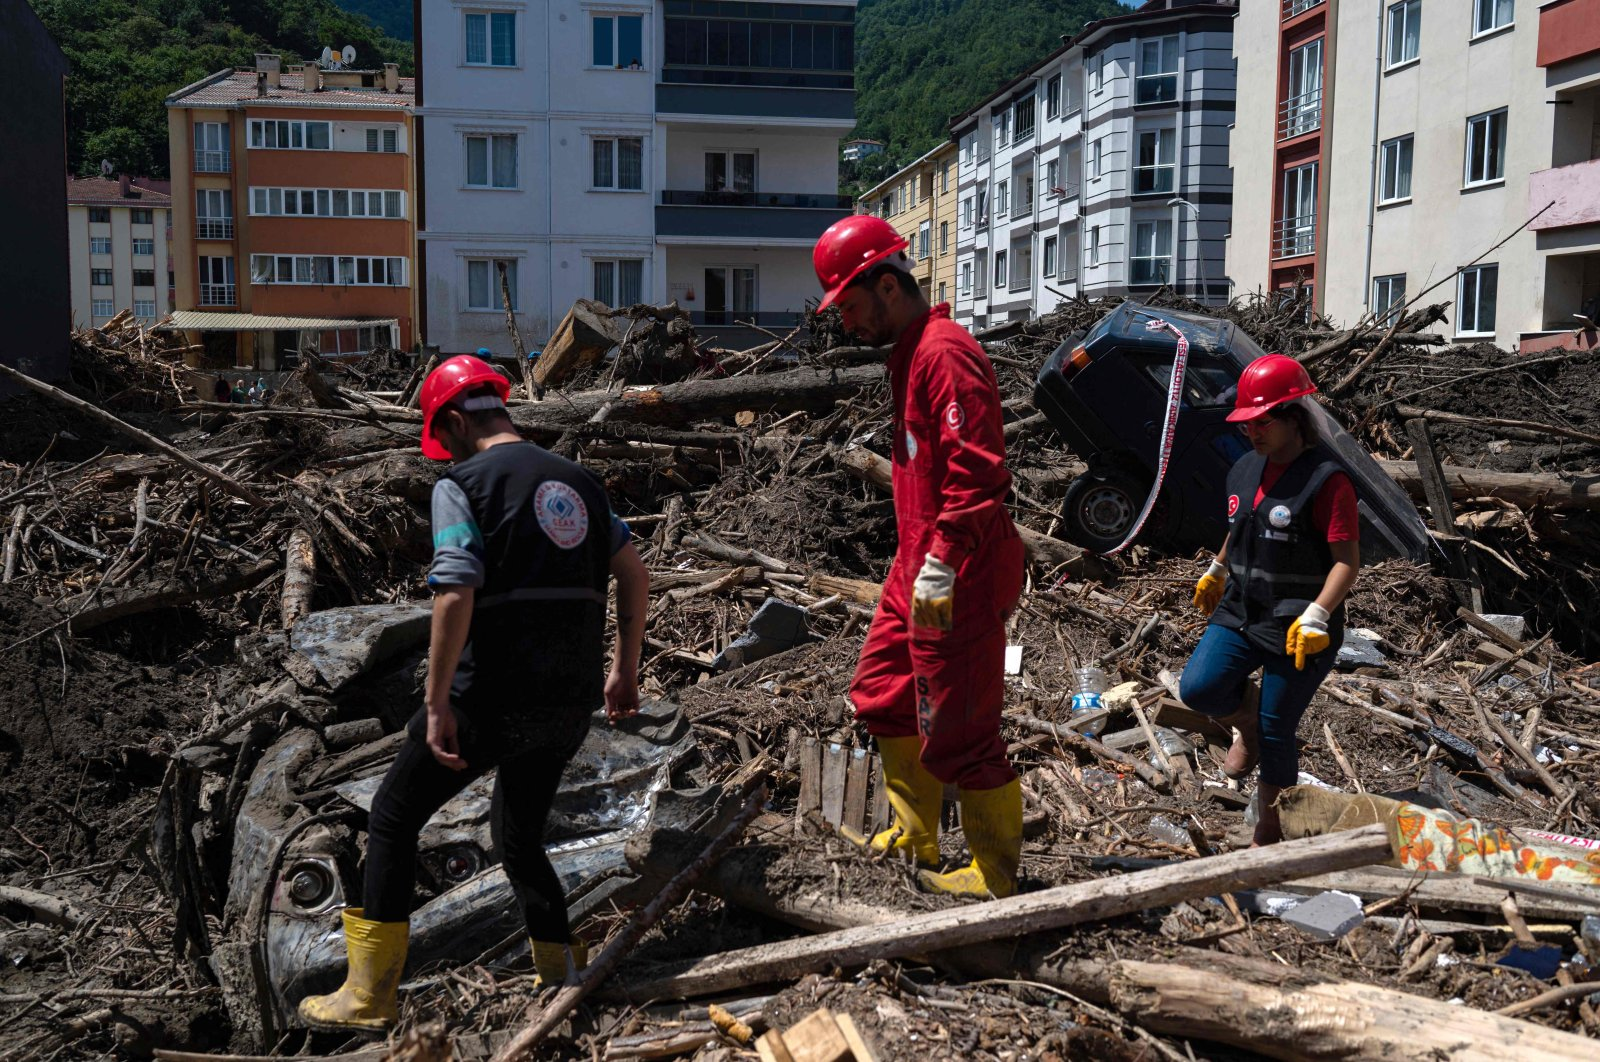 Civil defense workers walk through the mud and debris after flash floods destroyed parts of the town of Bozkurt in the district of Kastamonu, in the Black Sea region of Turkey, Aug. 15, 2021. (AFP Photo)